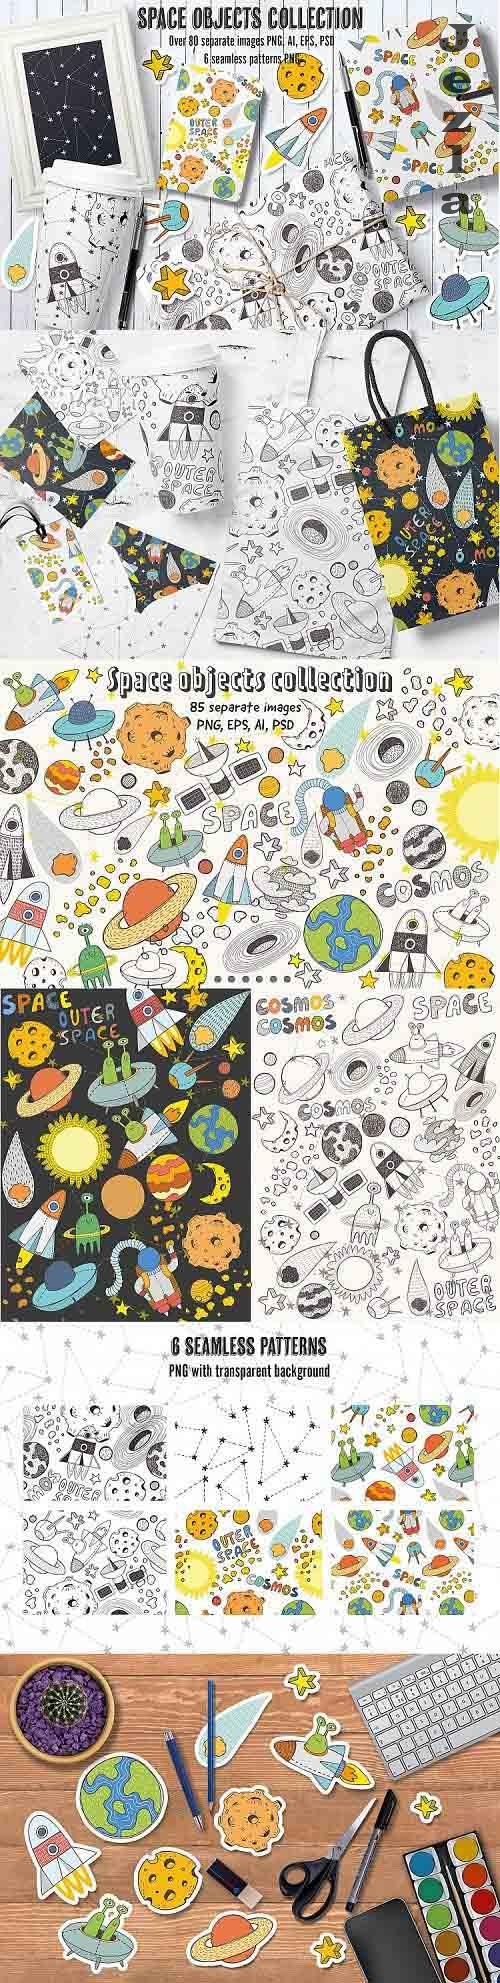 Space objects collection - 79308